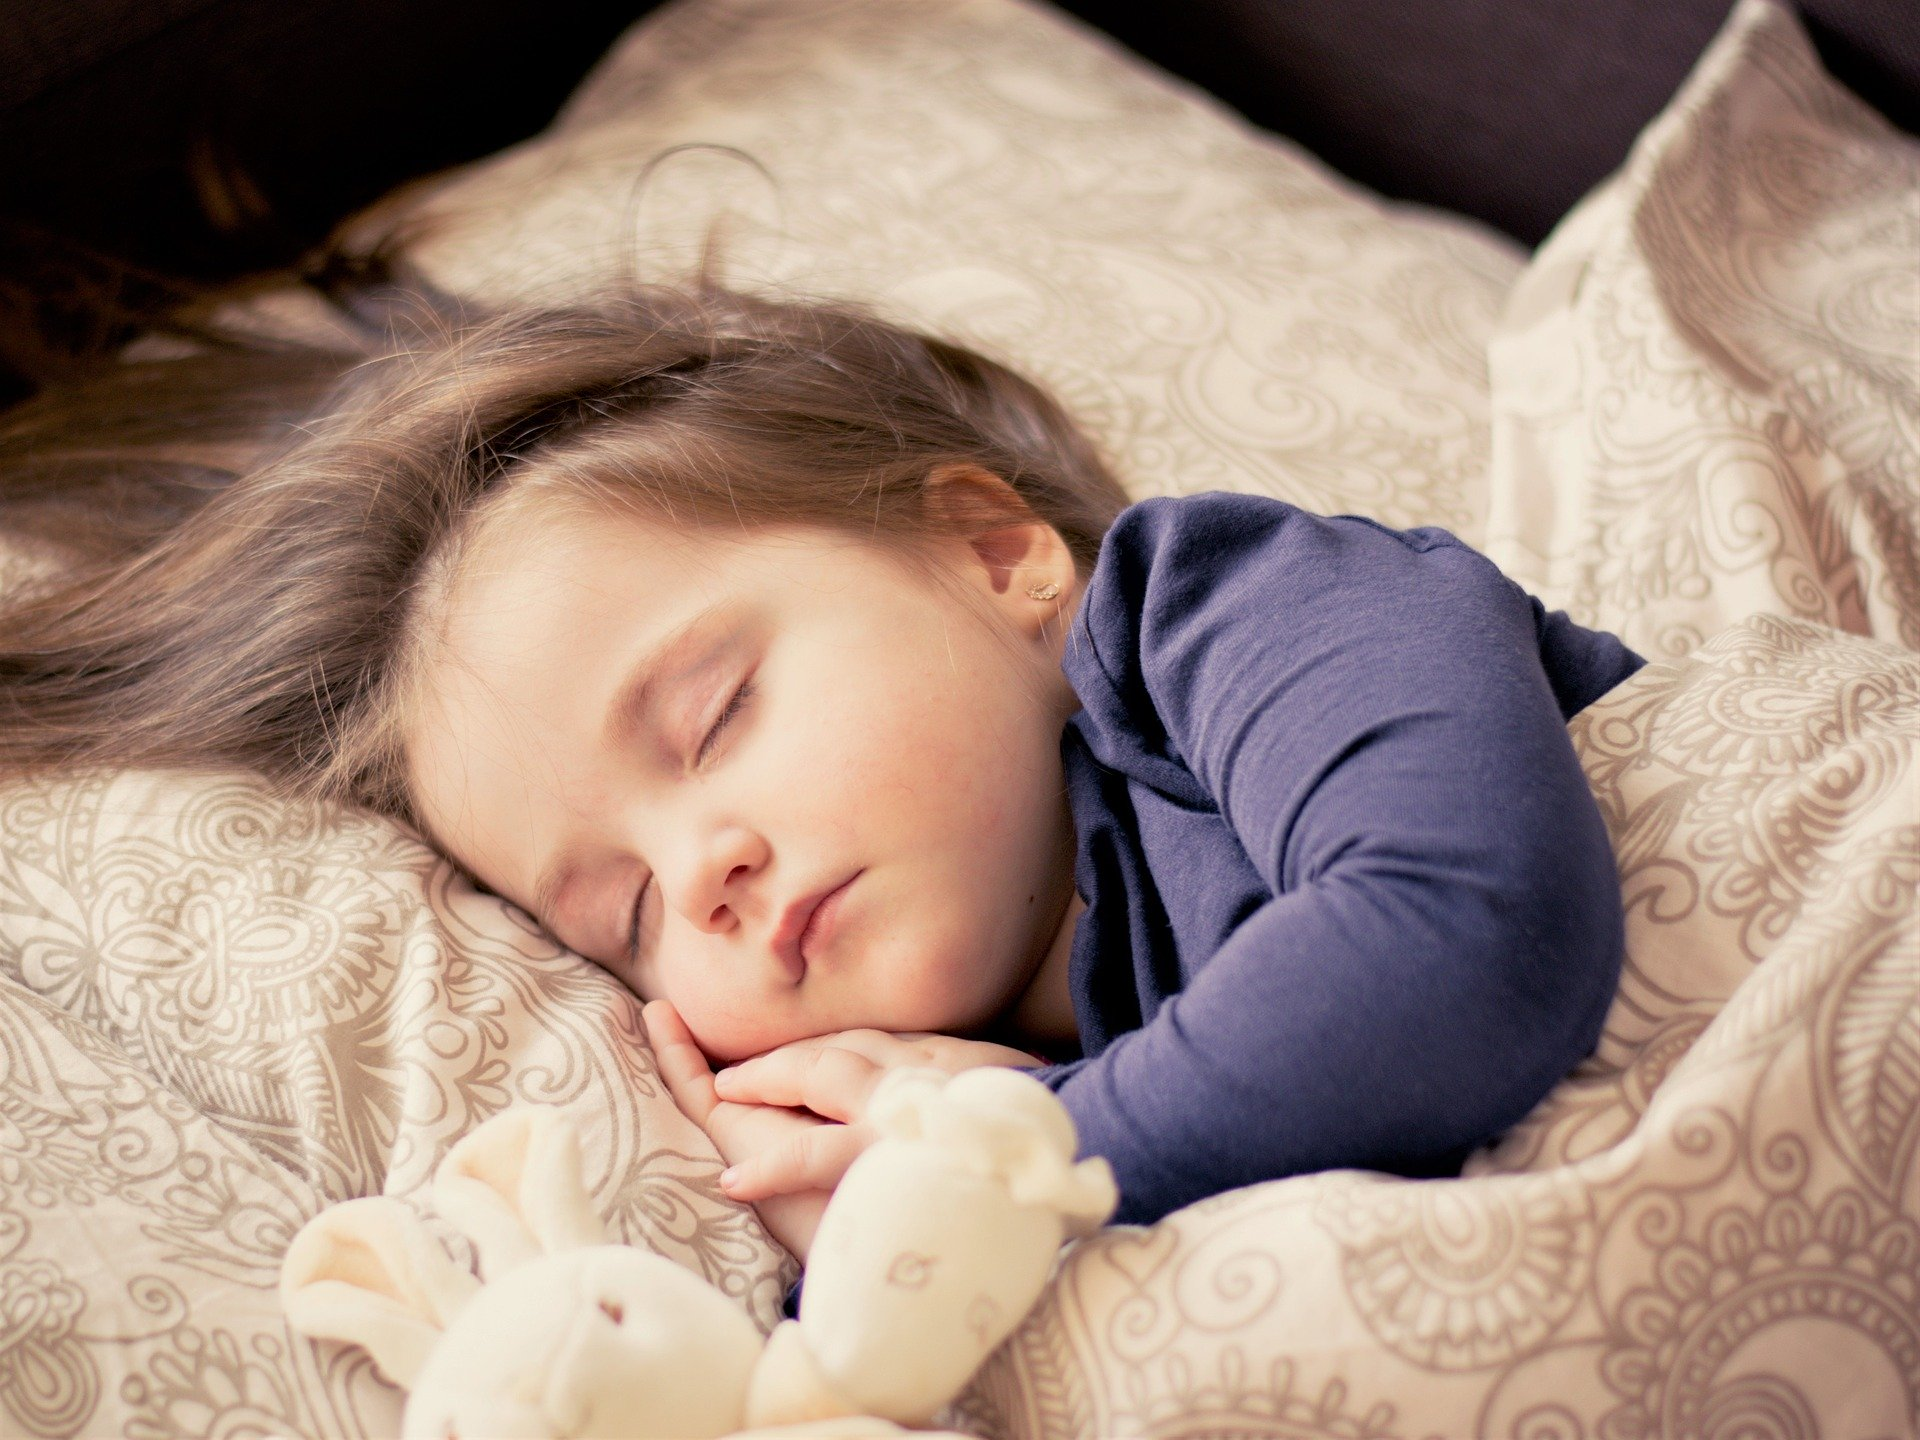 Co-Sleeping With A Toddler: Experts And A Parent's Pros and Cons